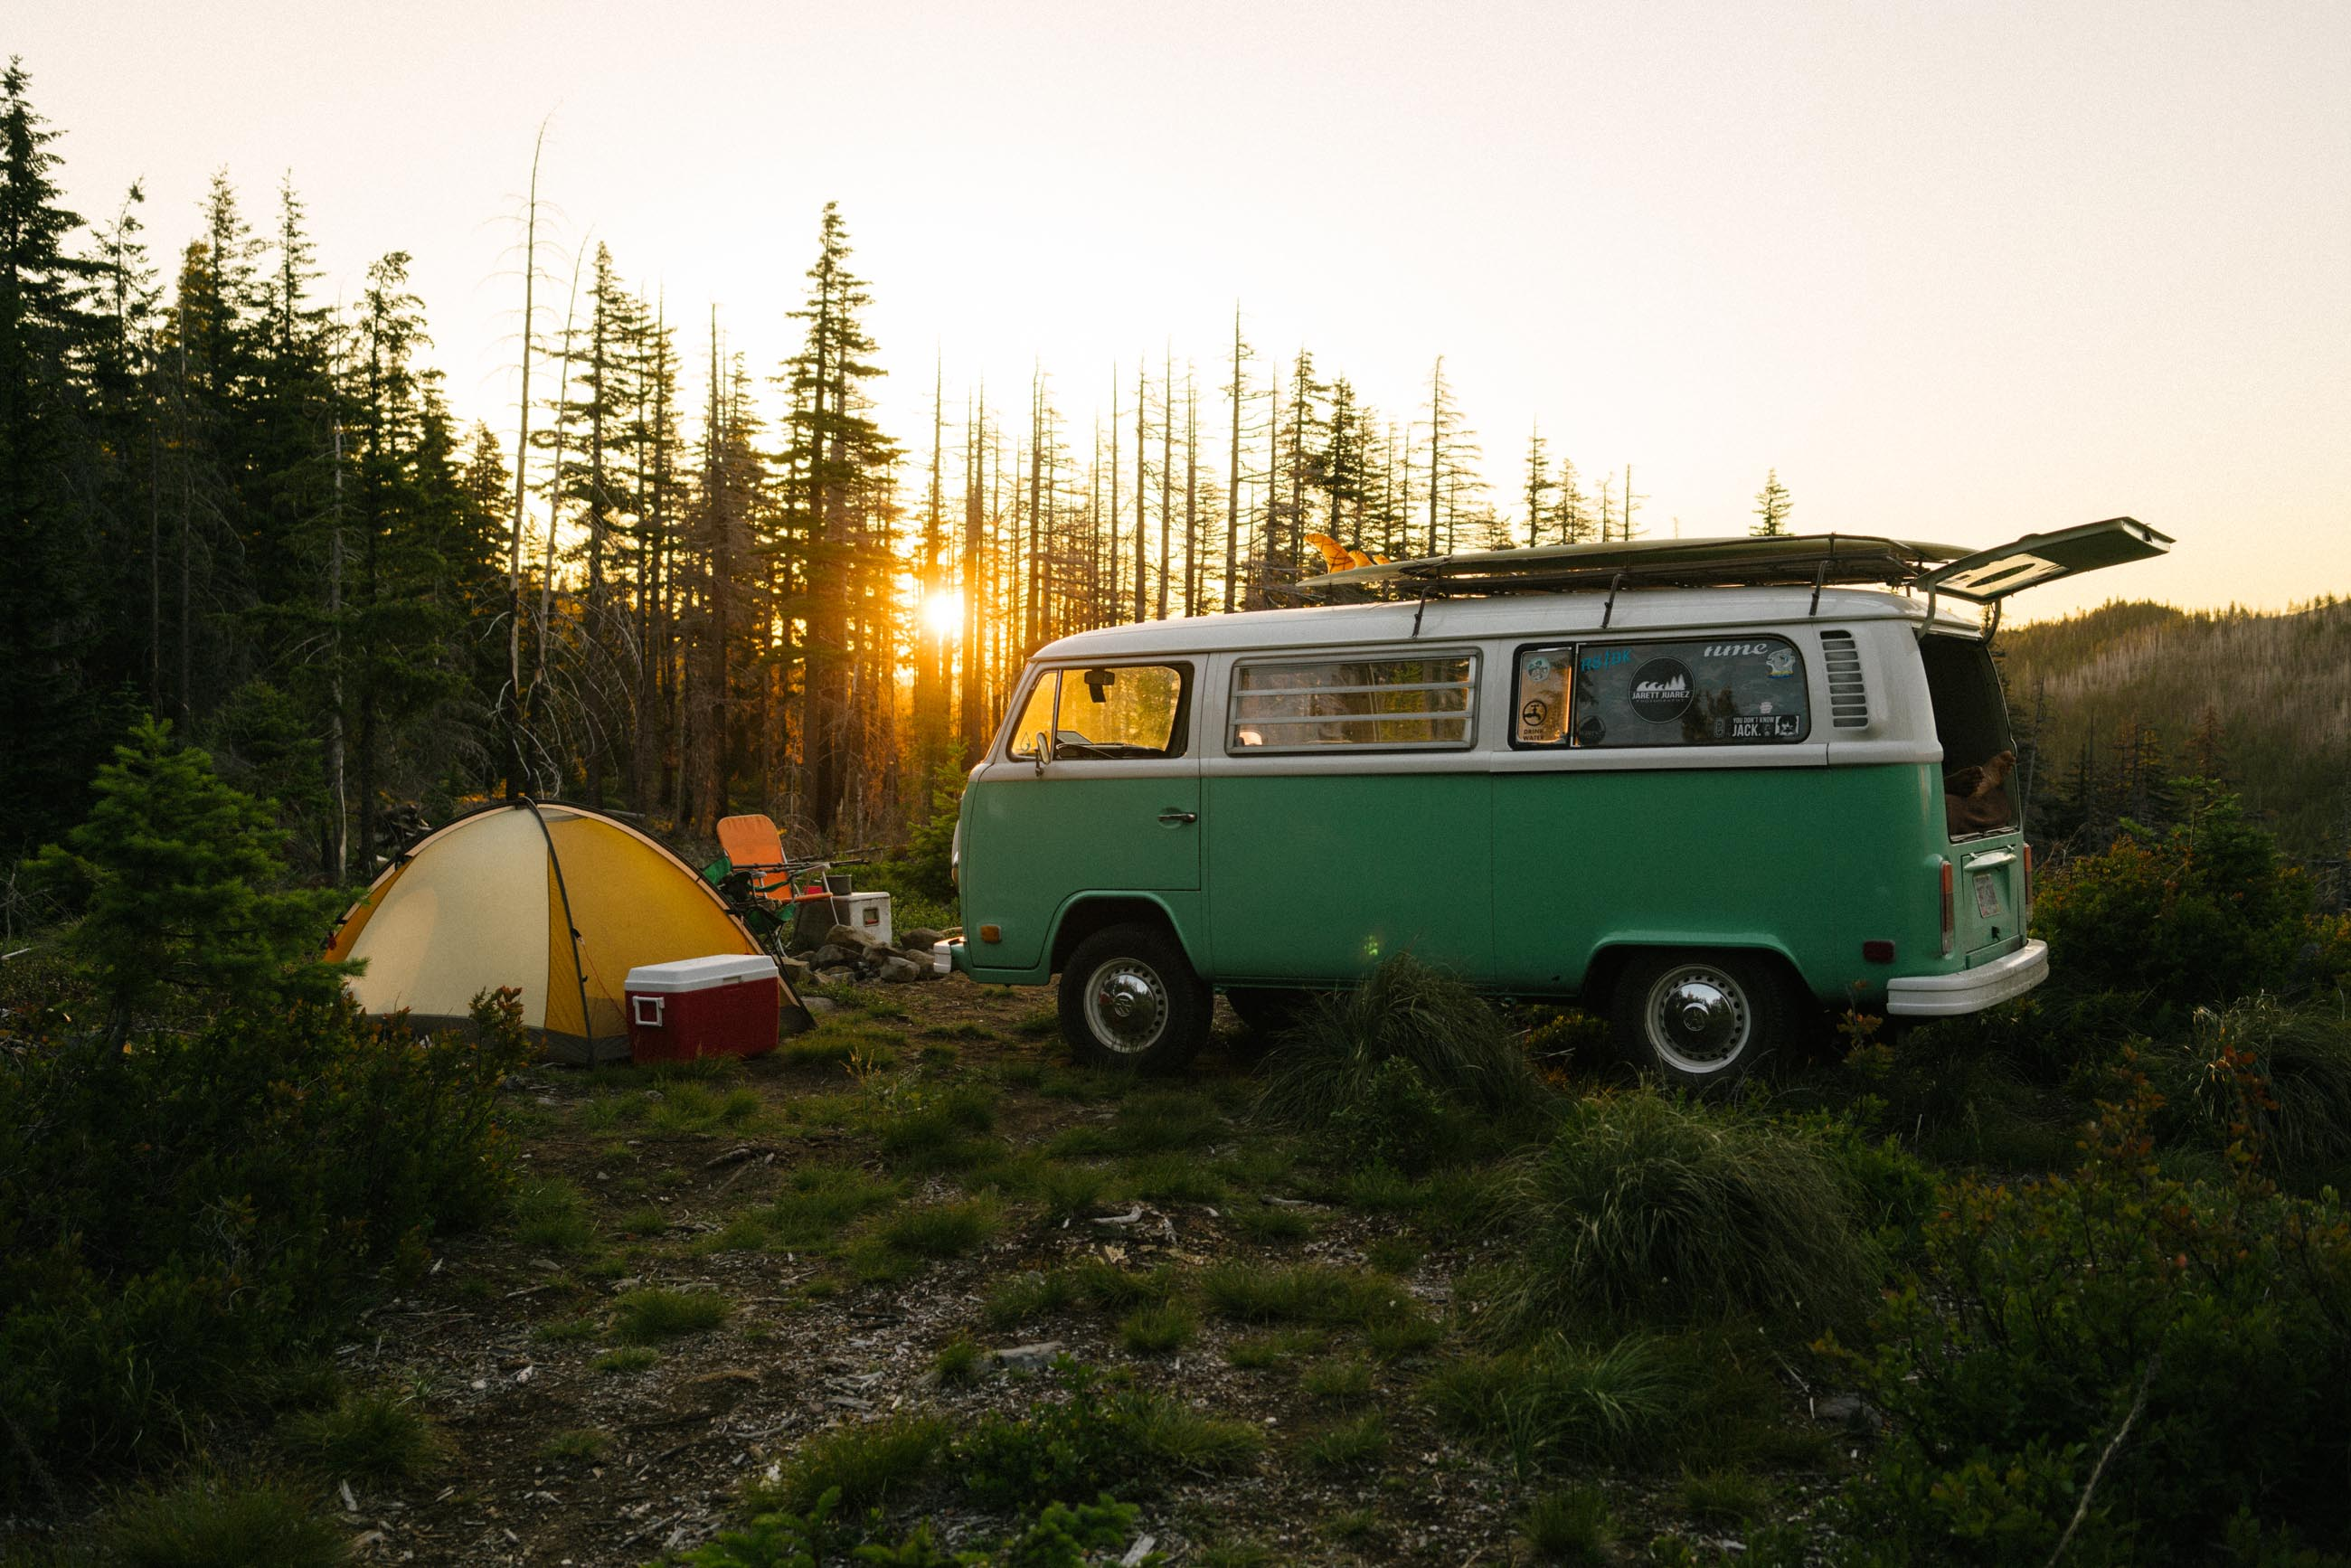 VW camping in Mt. Hood National Forest